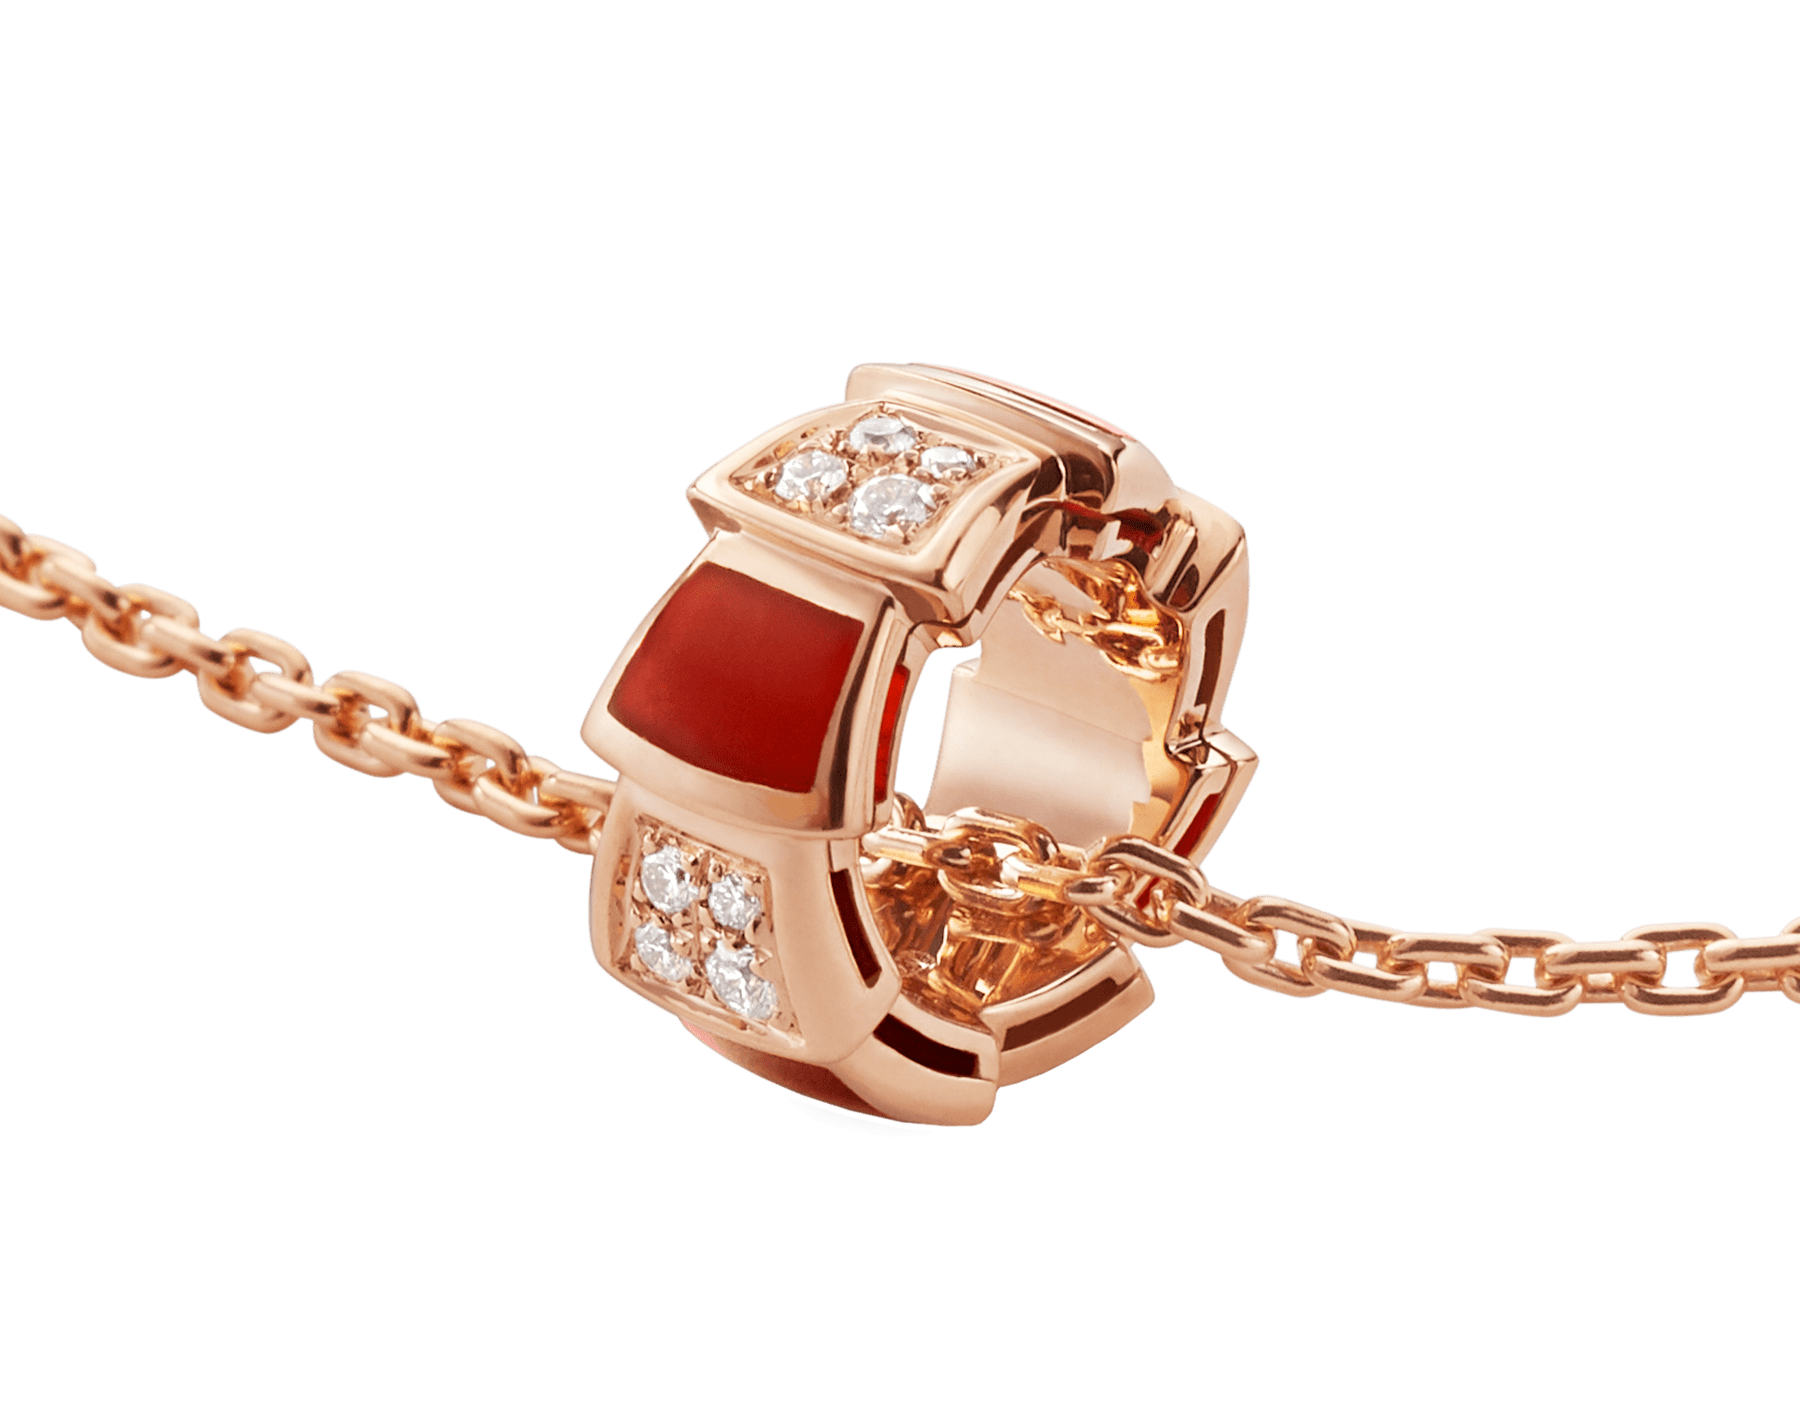 Serpenti Viper necklace with 18 kt rose gold chain and 18 kt rose gold pendant set with carnelian elements and demi pavé diamonds. 355088 image 3